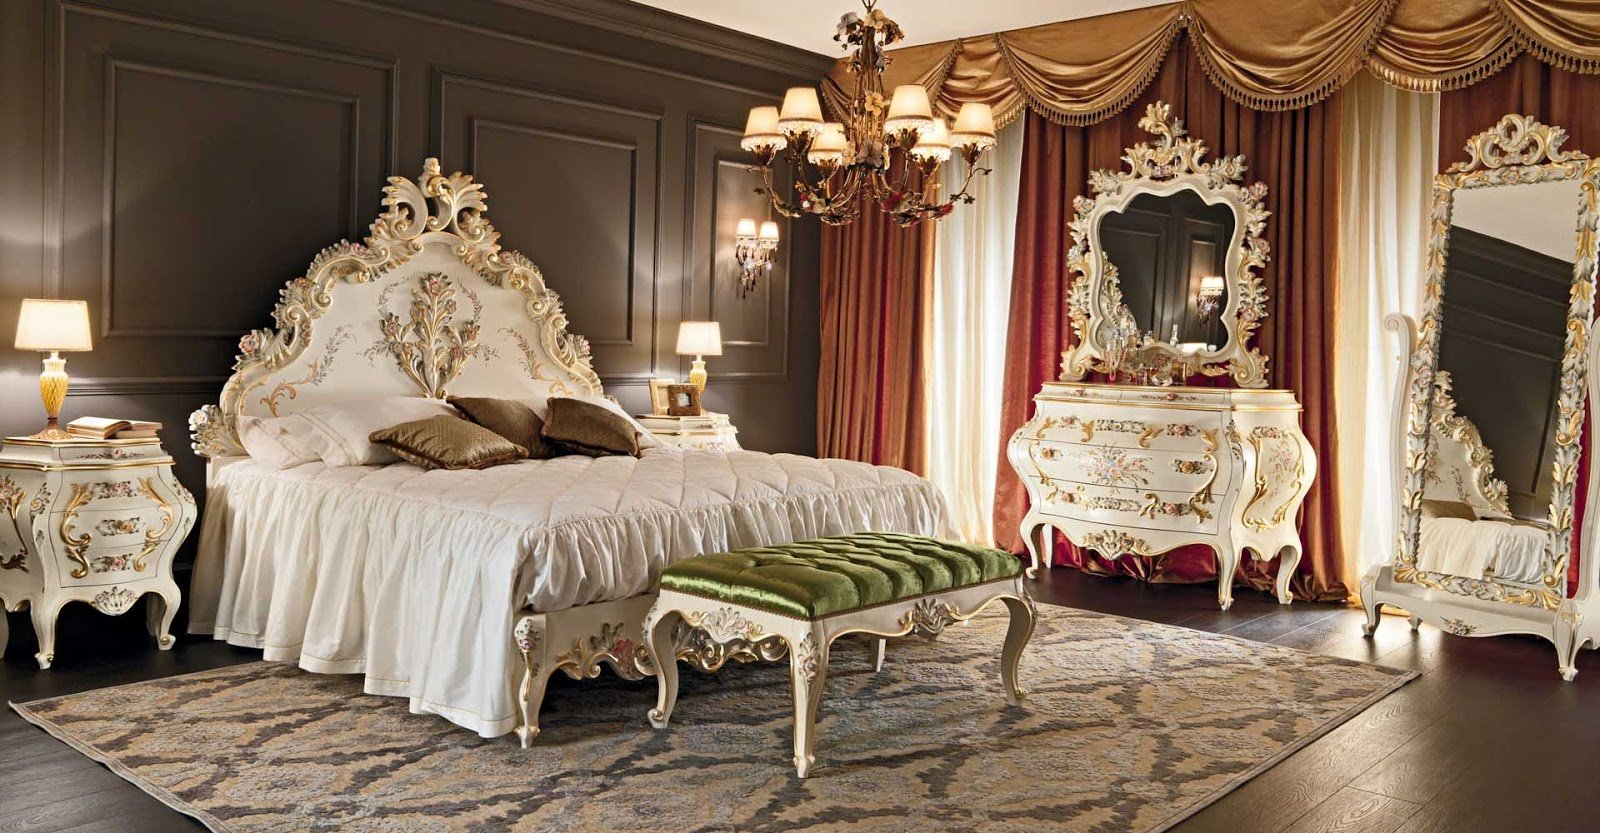 Best 23 Amazing Luxury Bedroom Furniture Ideas Home Design With Pictures